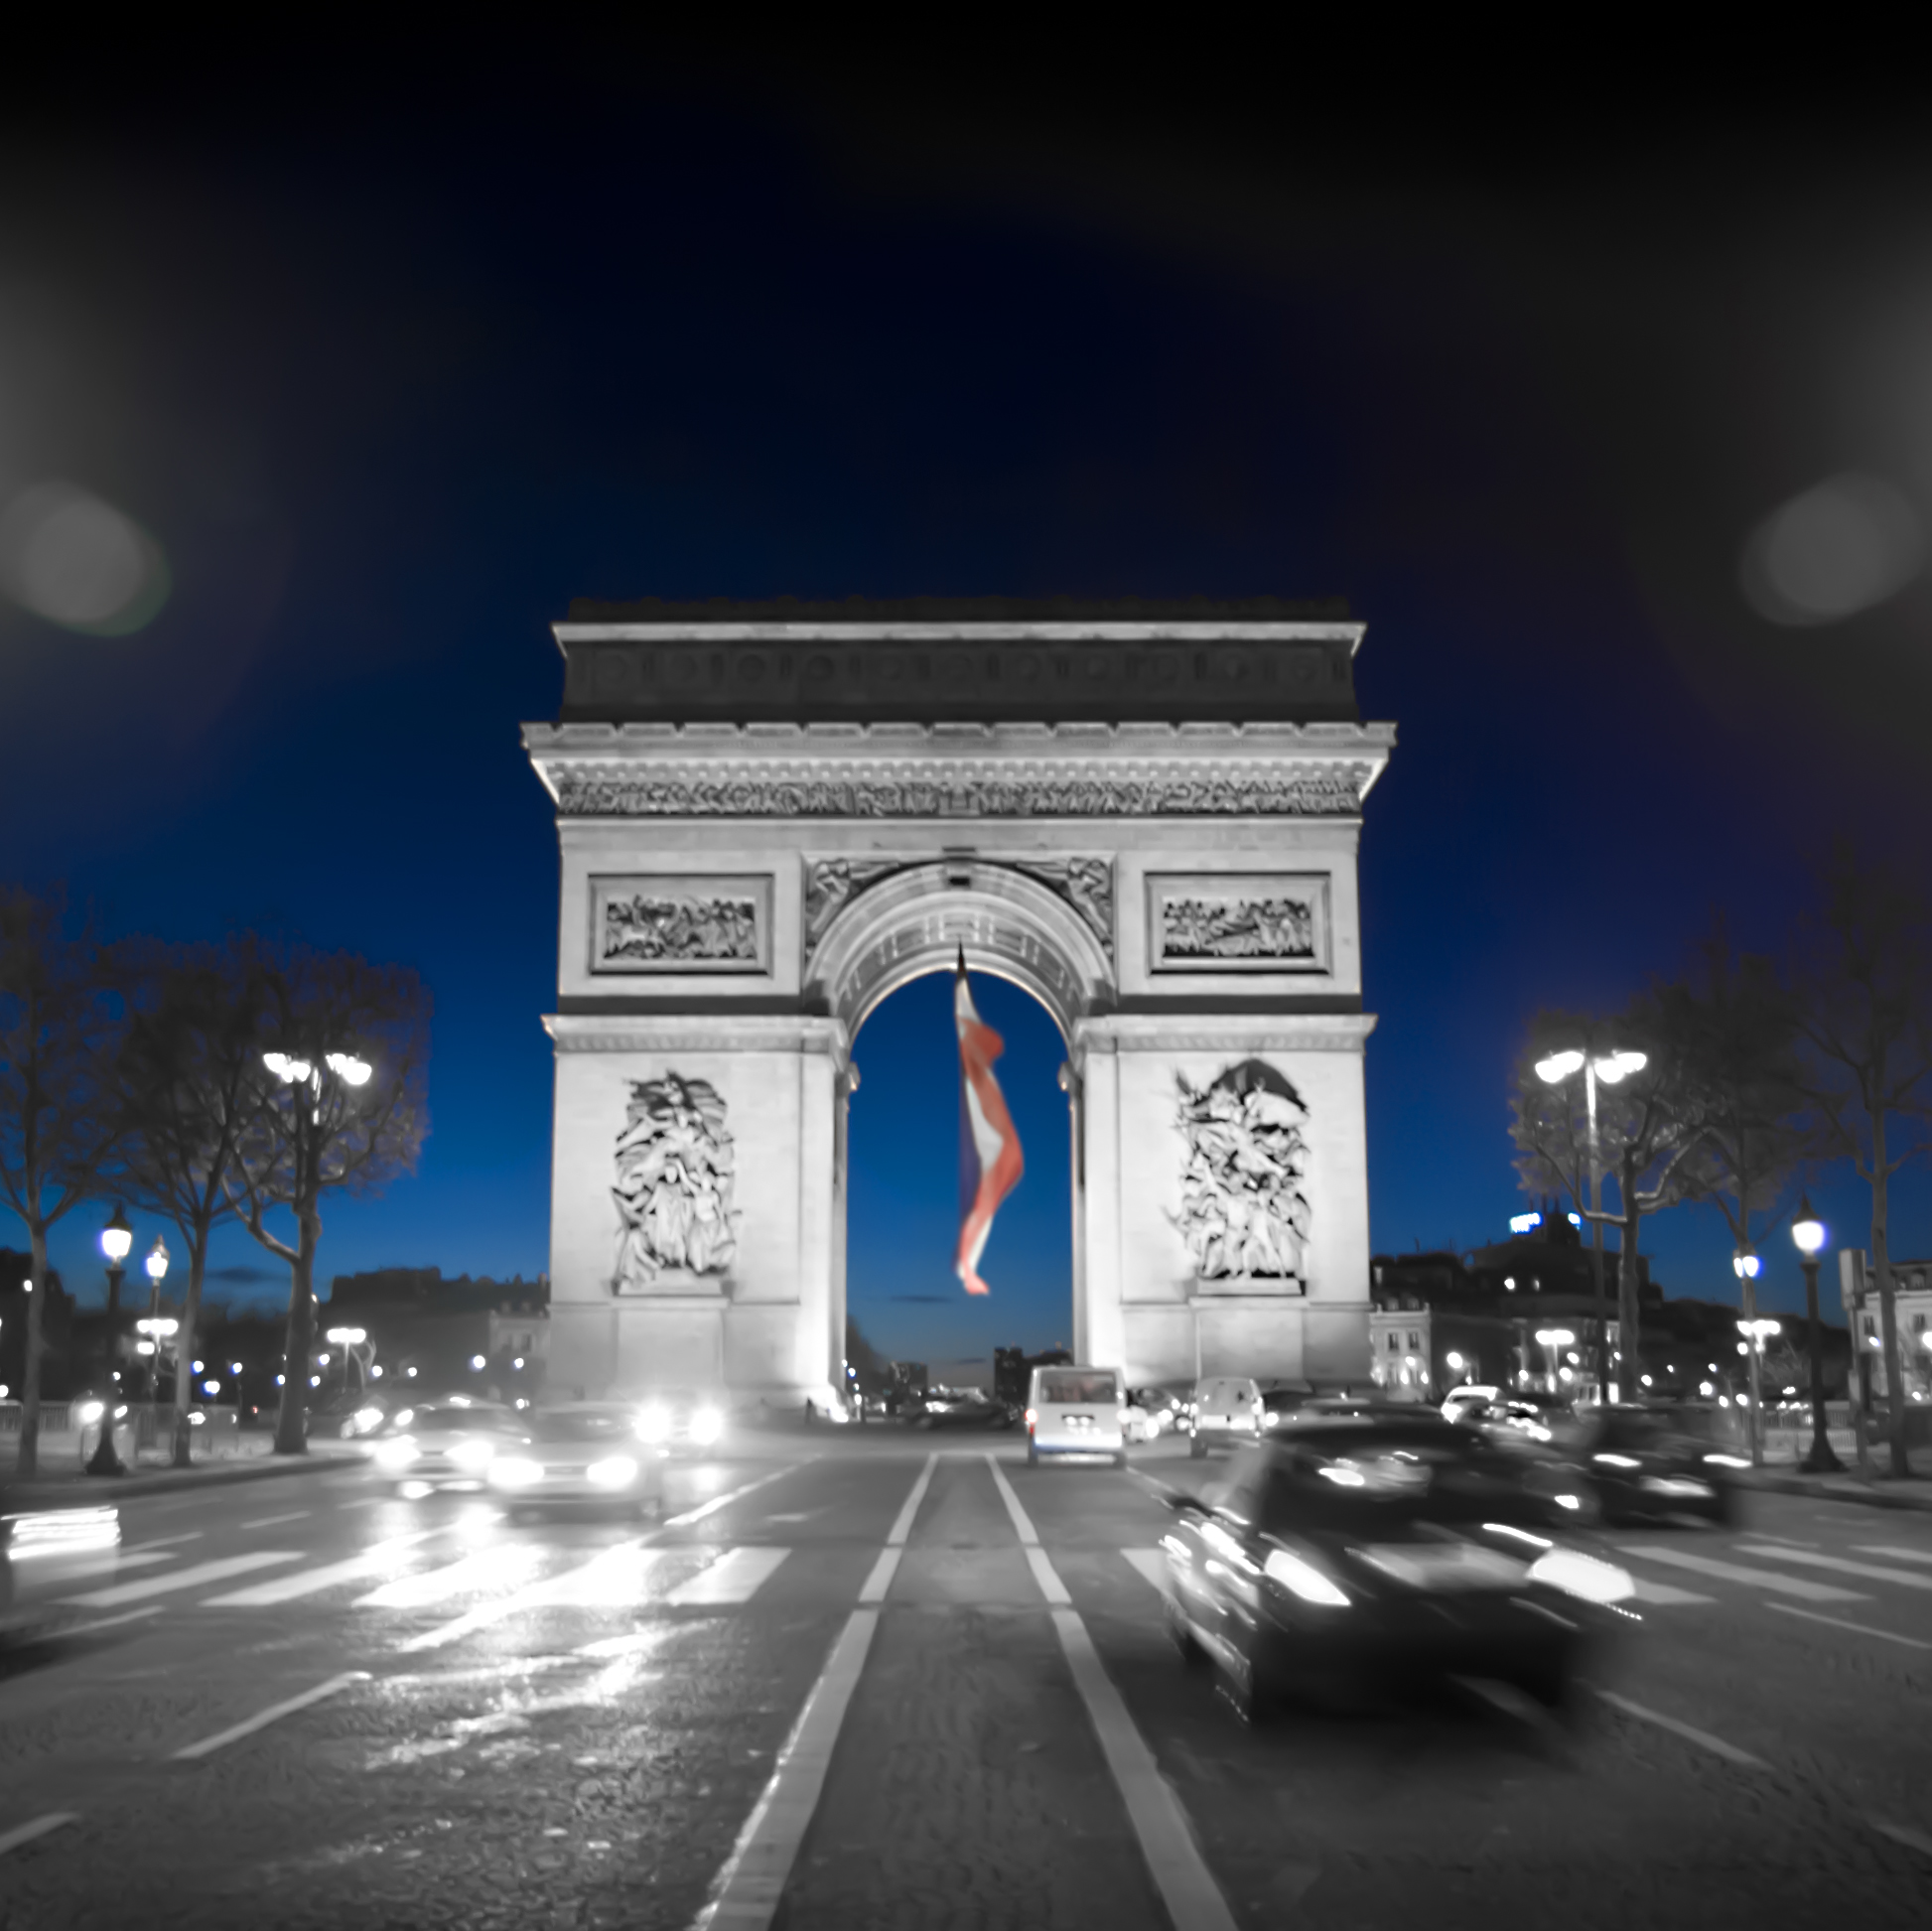 On my final night in paris, I was on   Les  Champs - Elysées  creating long exposures of the  Arc  de  Triomphe.